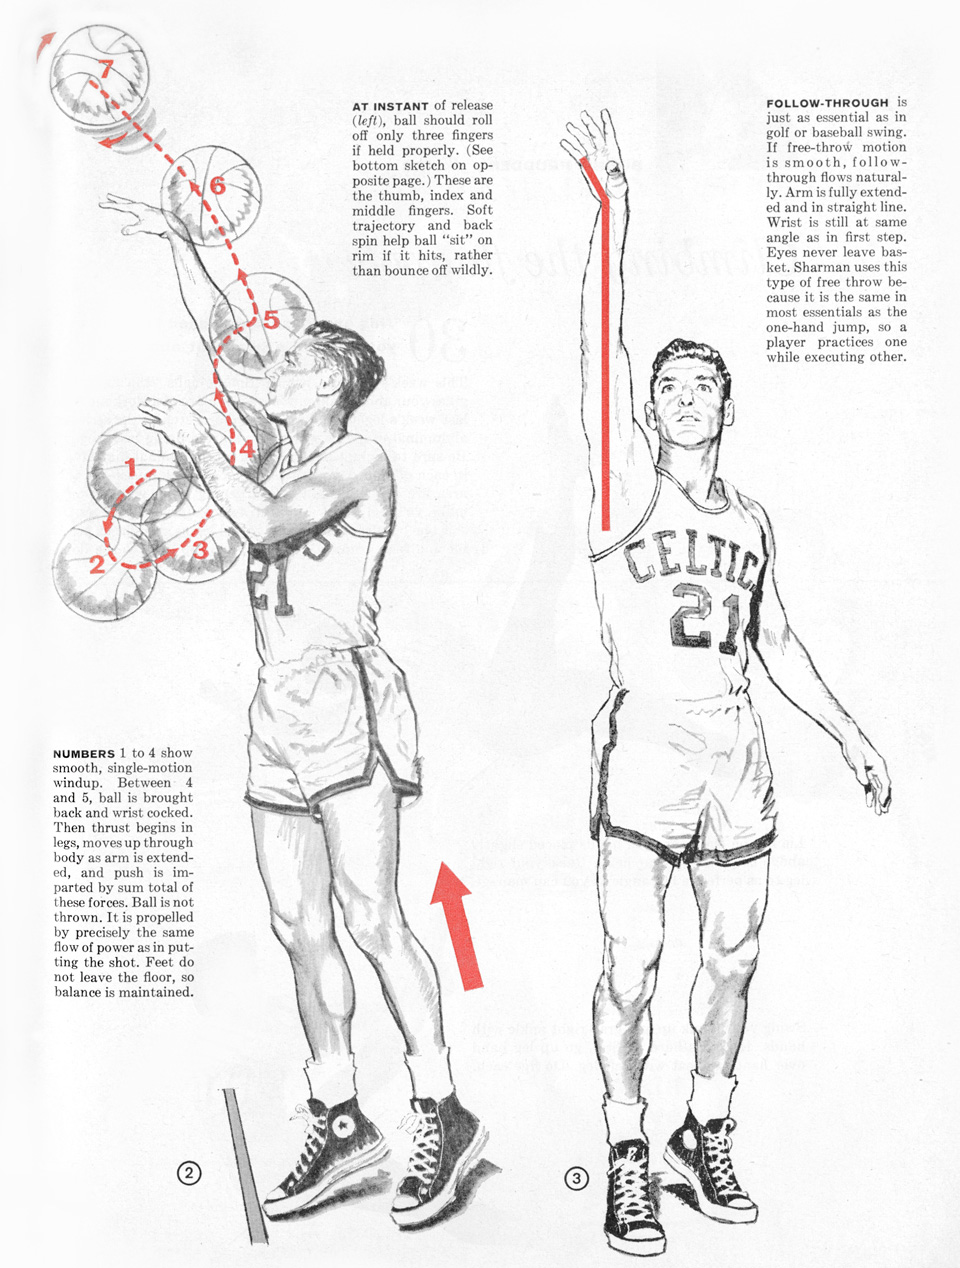 This 1958 infographic will teach you how to shoot a perfect free